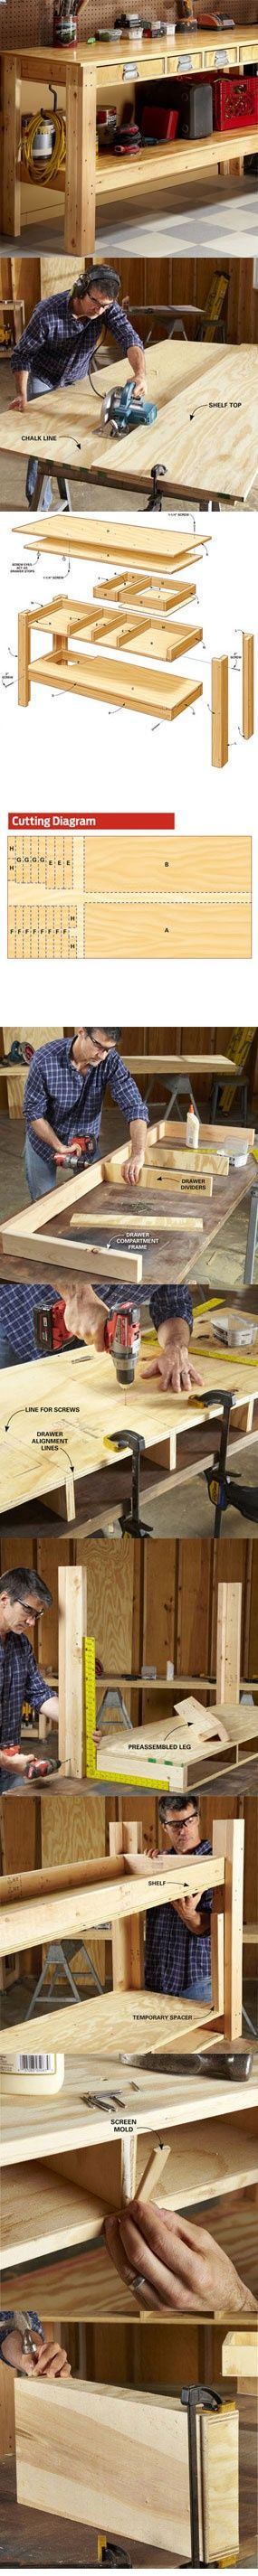 Use this simple workbench plan to build a sturdy, tough workbench that'll last for decades. It has drawers and shelves for tool storage. It's inexpensive. And even a novice can build it in one day. Get your simple workbench plans at www.familyhandyma...